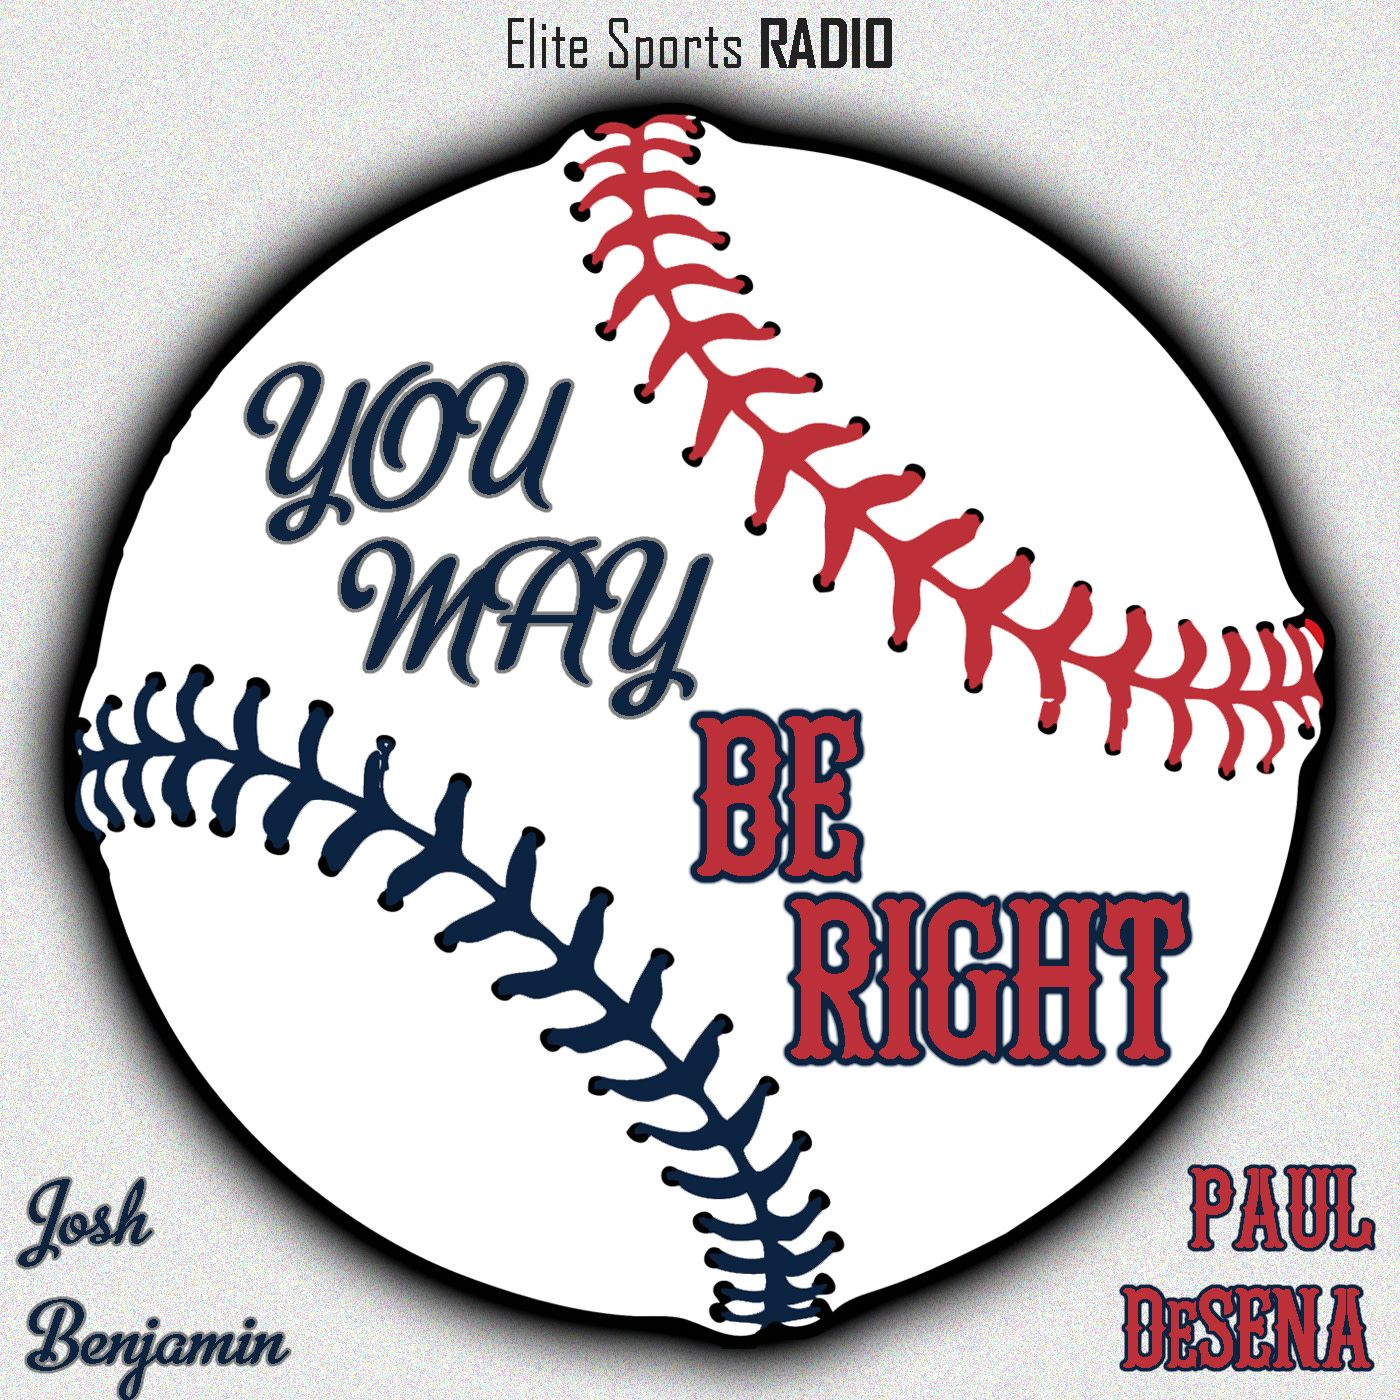 You May Be Right Podcast: Early Injuries, Game of Thrones & Other Stories